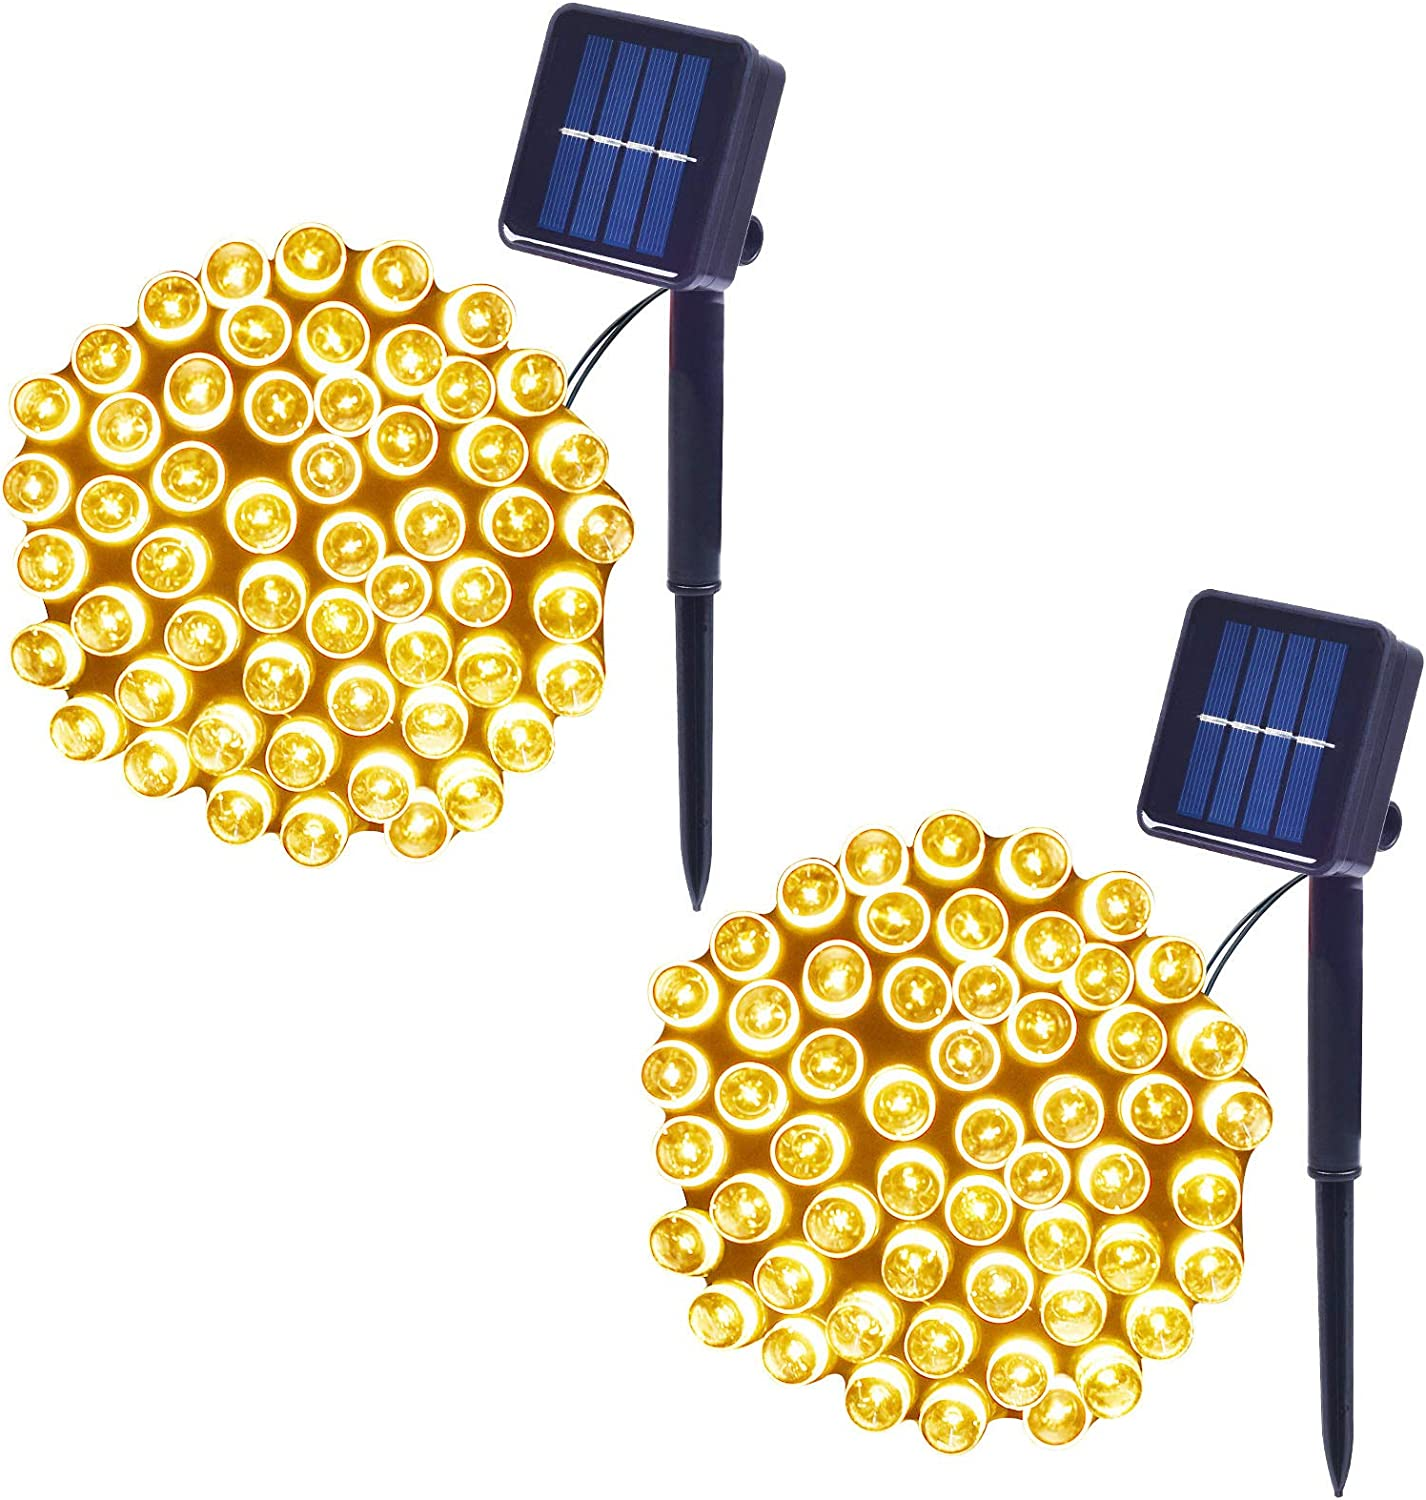 shipfree Beauty products Solar String Lights Waterproof In Outdoor Holiday